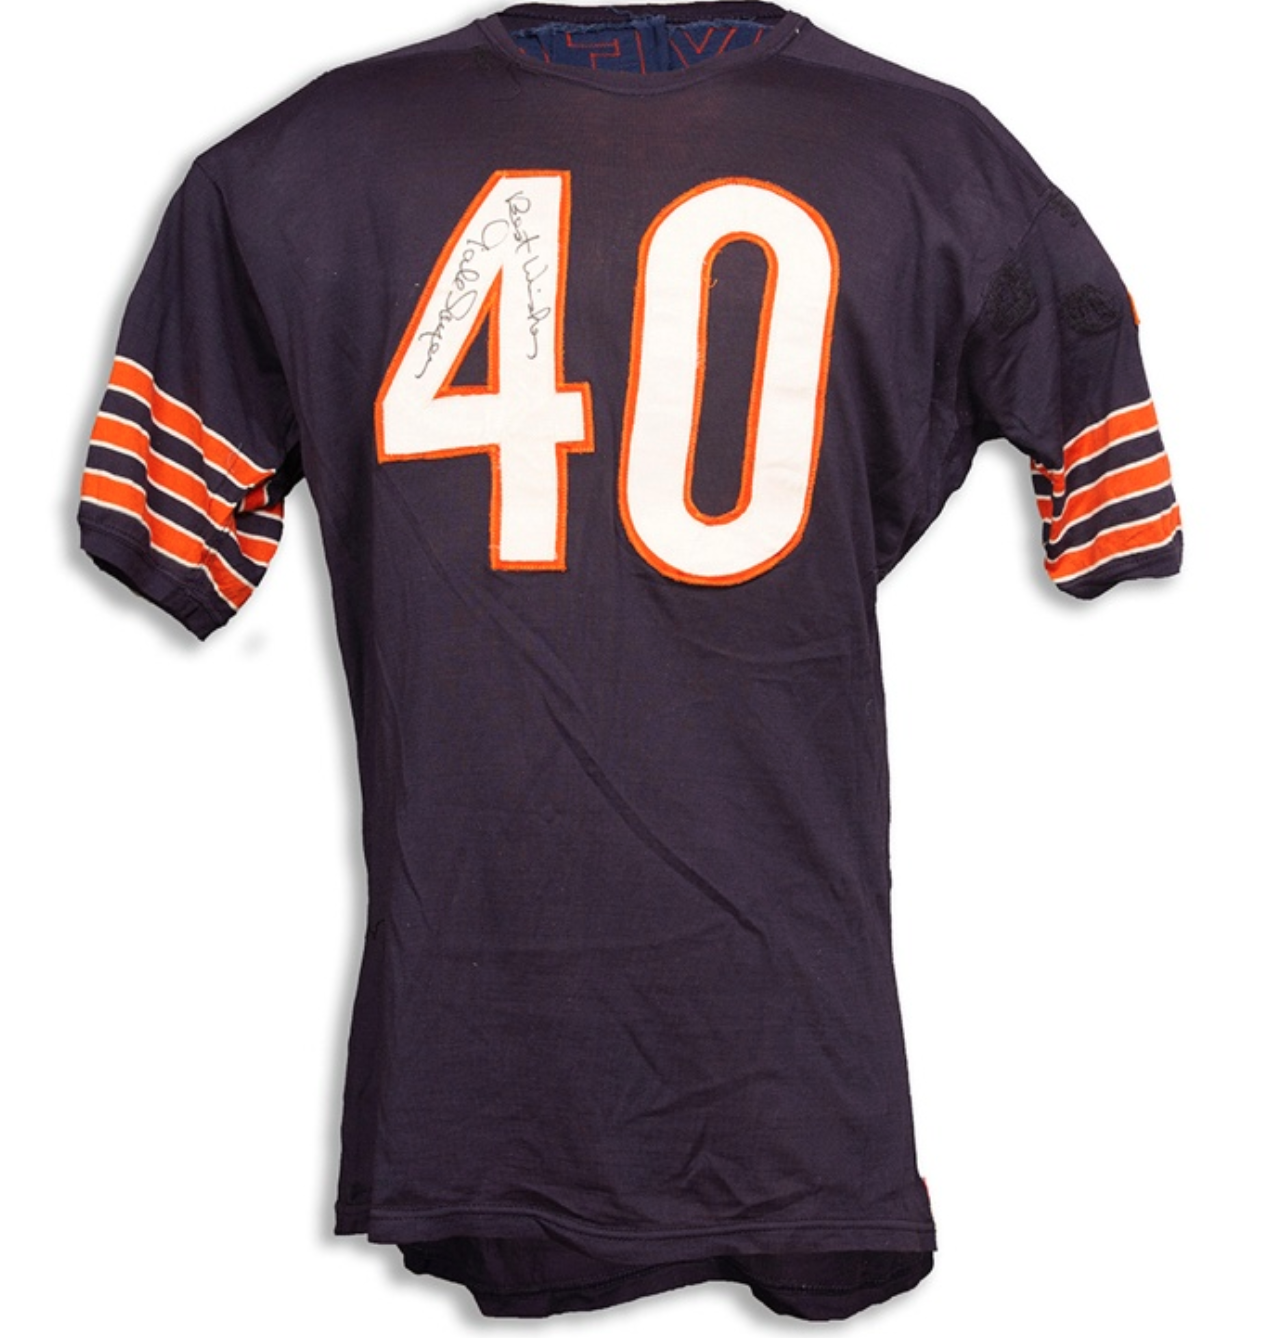 1960s Game Worn & Signed Gale Sayers Jersey